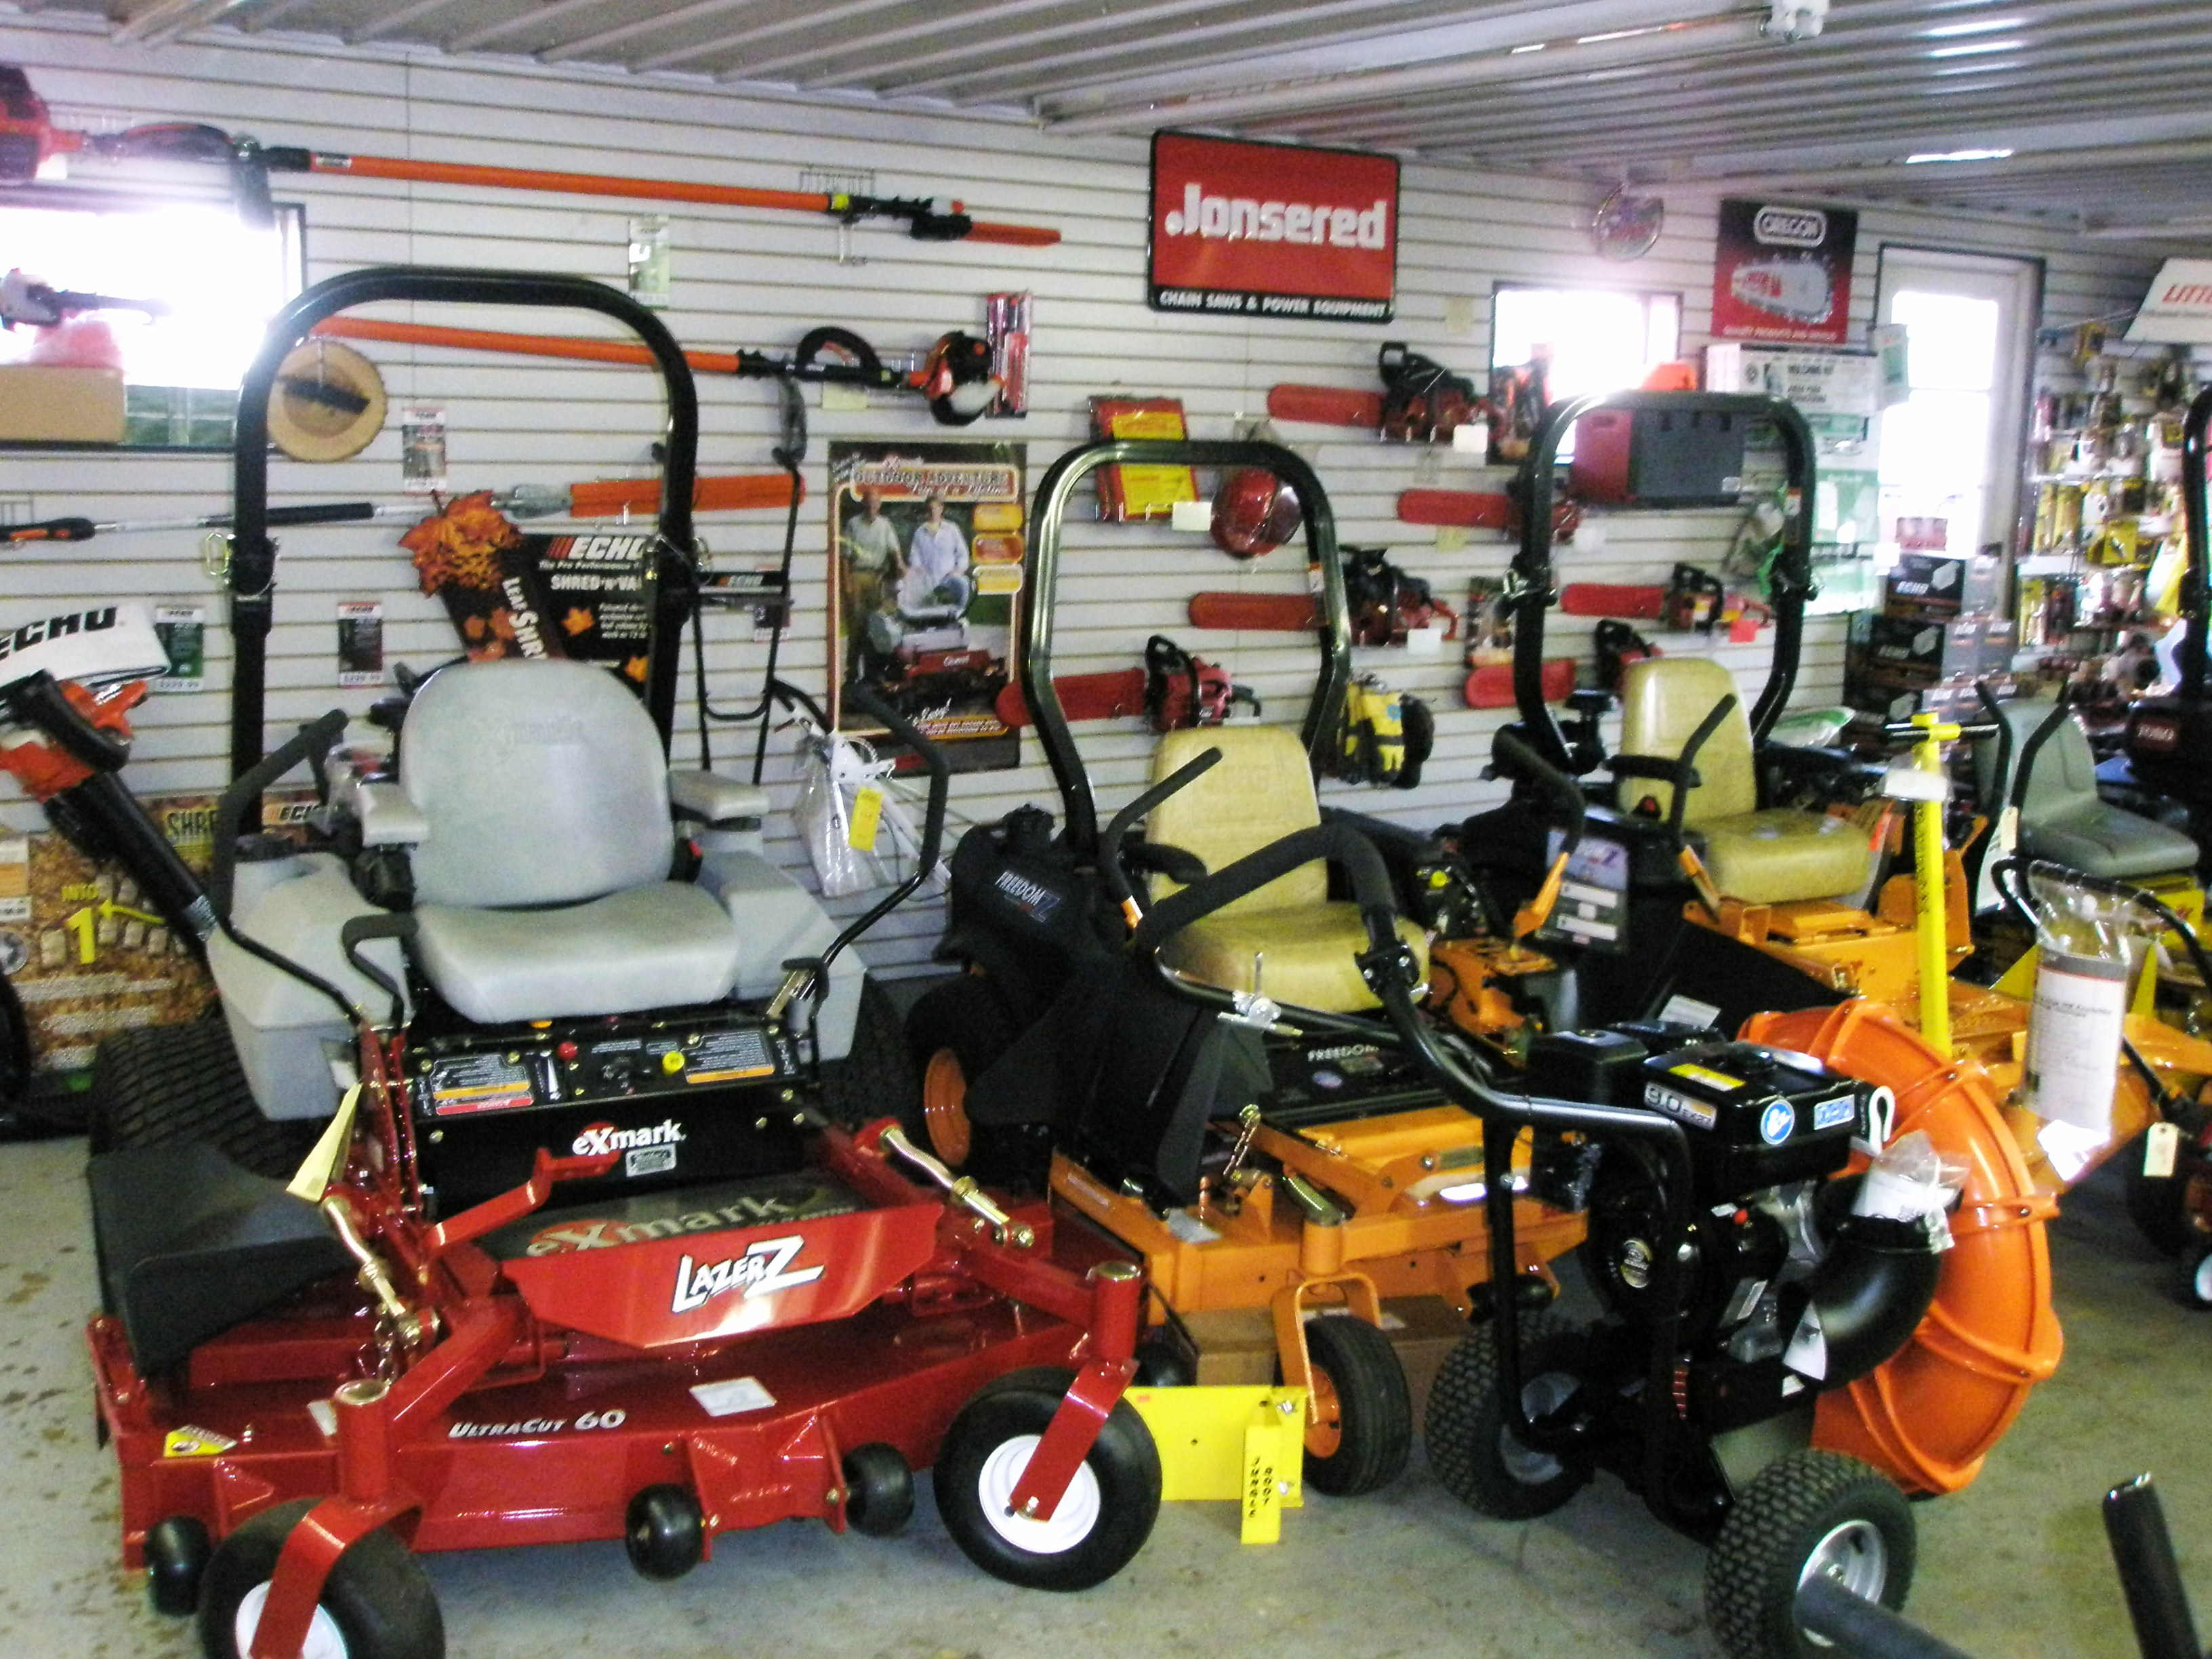 Walkers mower and equipment looking for lawn mowers tillers tractors chain saws trimmers snowblowers or woodchippers we provide the professional landscaper and homeowner with the publicscrutiny Choice Image